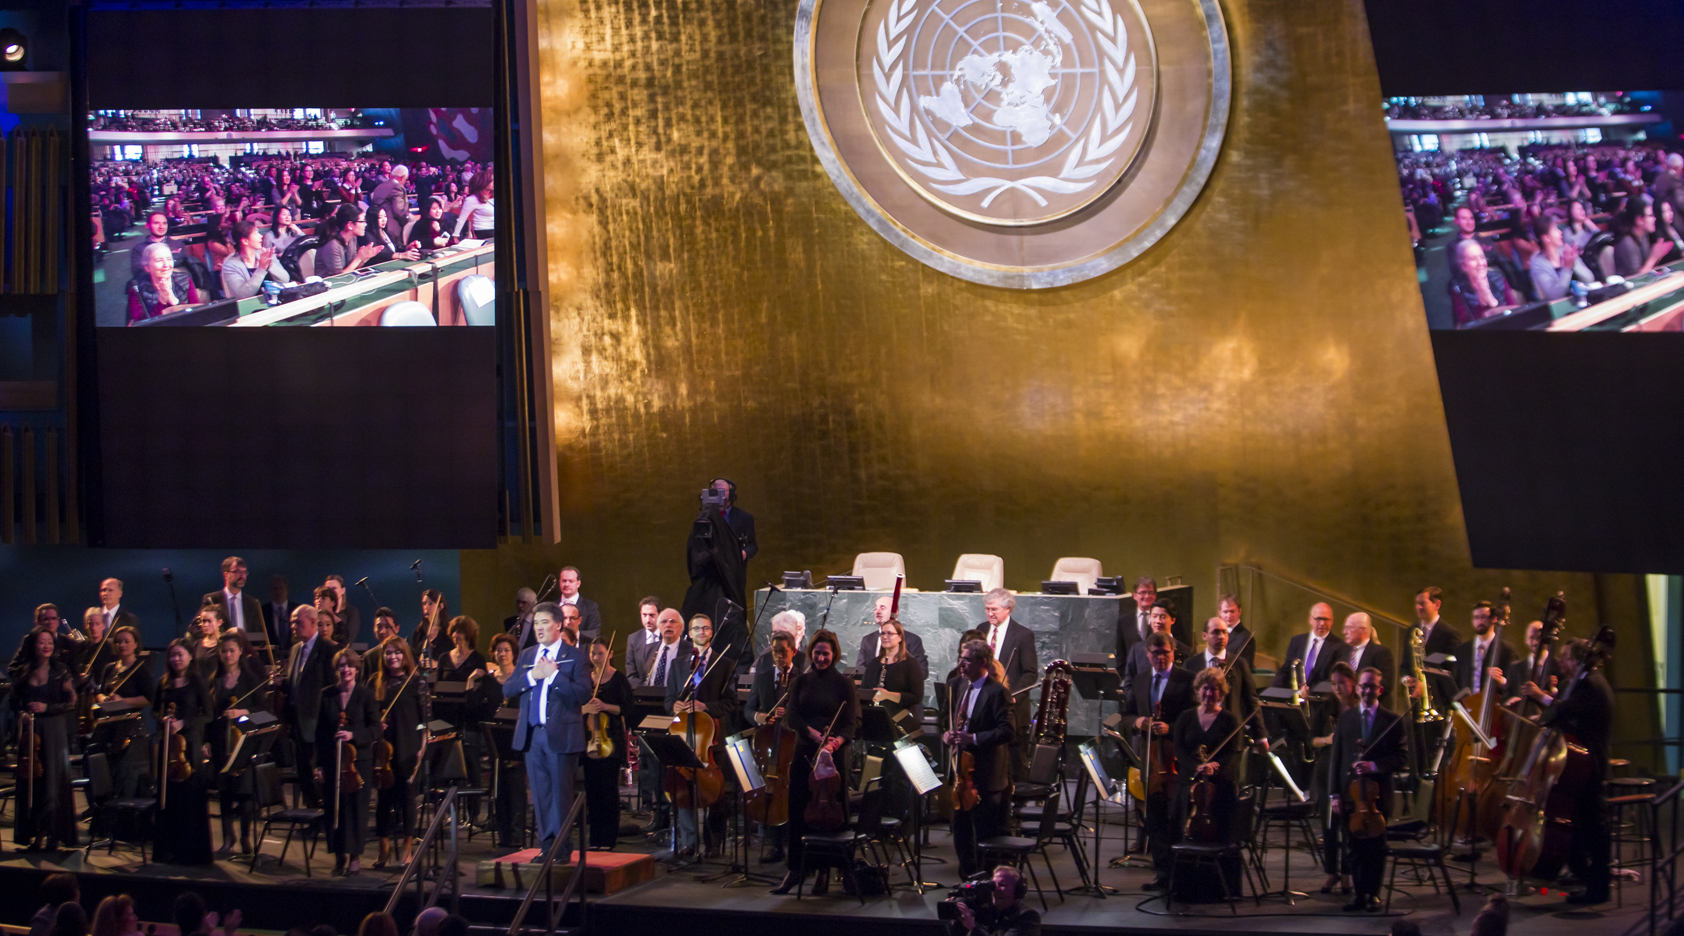 Alan Gilbert To Conduct Philharmonic Joined By Musicians From Around 84 Tempo Fuse Box And The New York Believe In Power Of Music Heal Build Bridges Unite Across Borders Free Performance